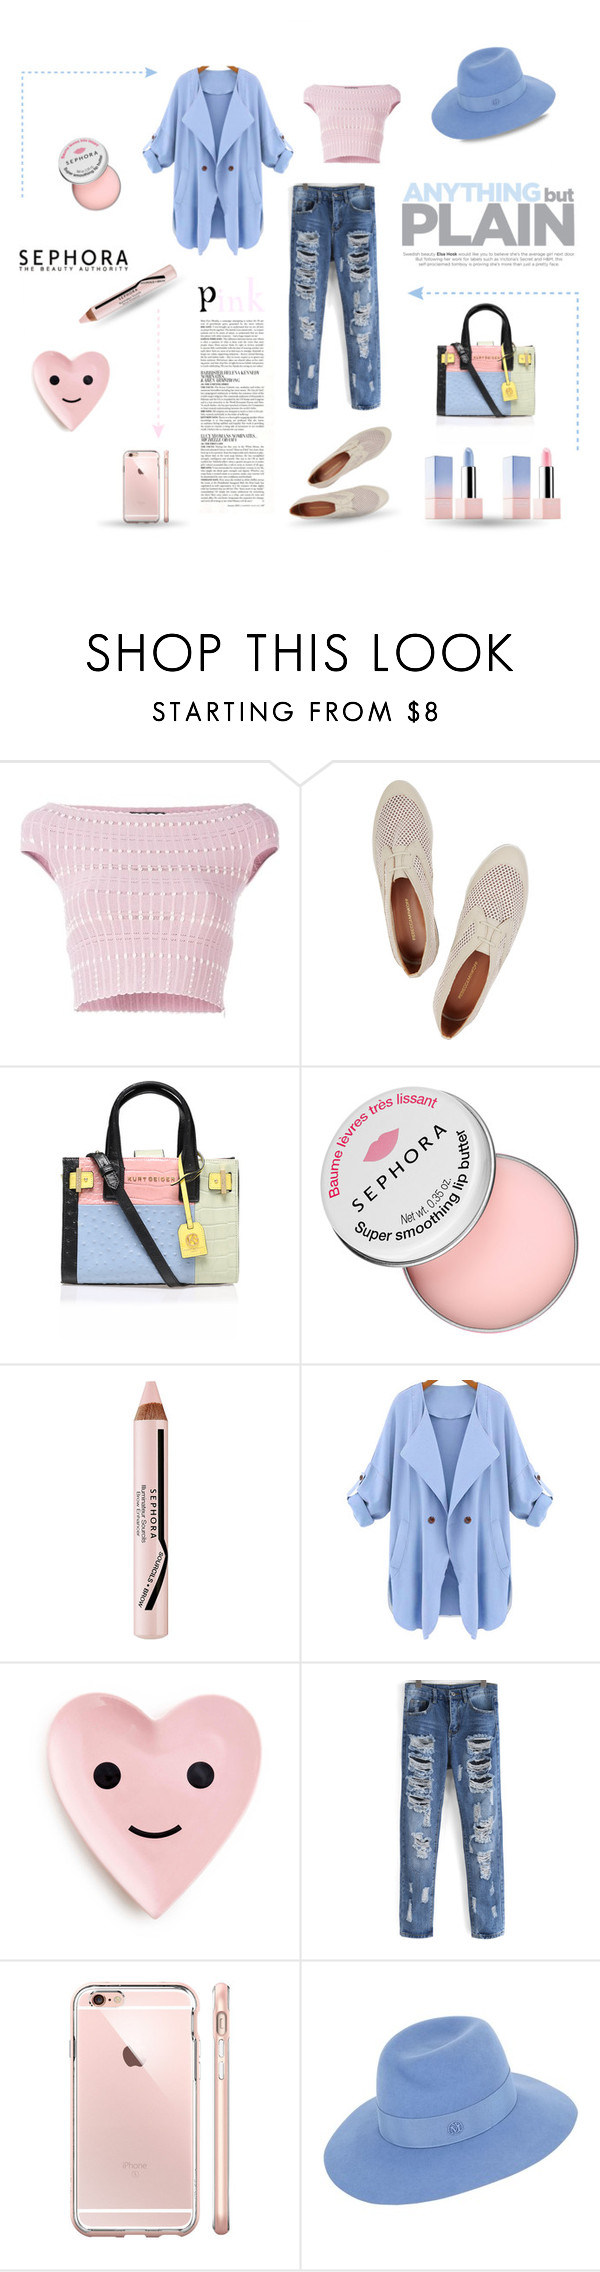 """""""Pink and Blue"""" by justjules2332 ❤ liked on Polyvore featuring Alexander McQueen, Rebecca Minkoff, Kurt Geiger, McGinn, Sephora Collection, Maison Michel, Beauty, rebeccaminkoff, sephora and pinkandblue"""